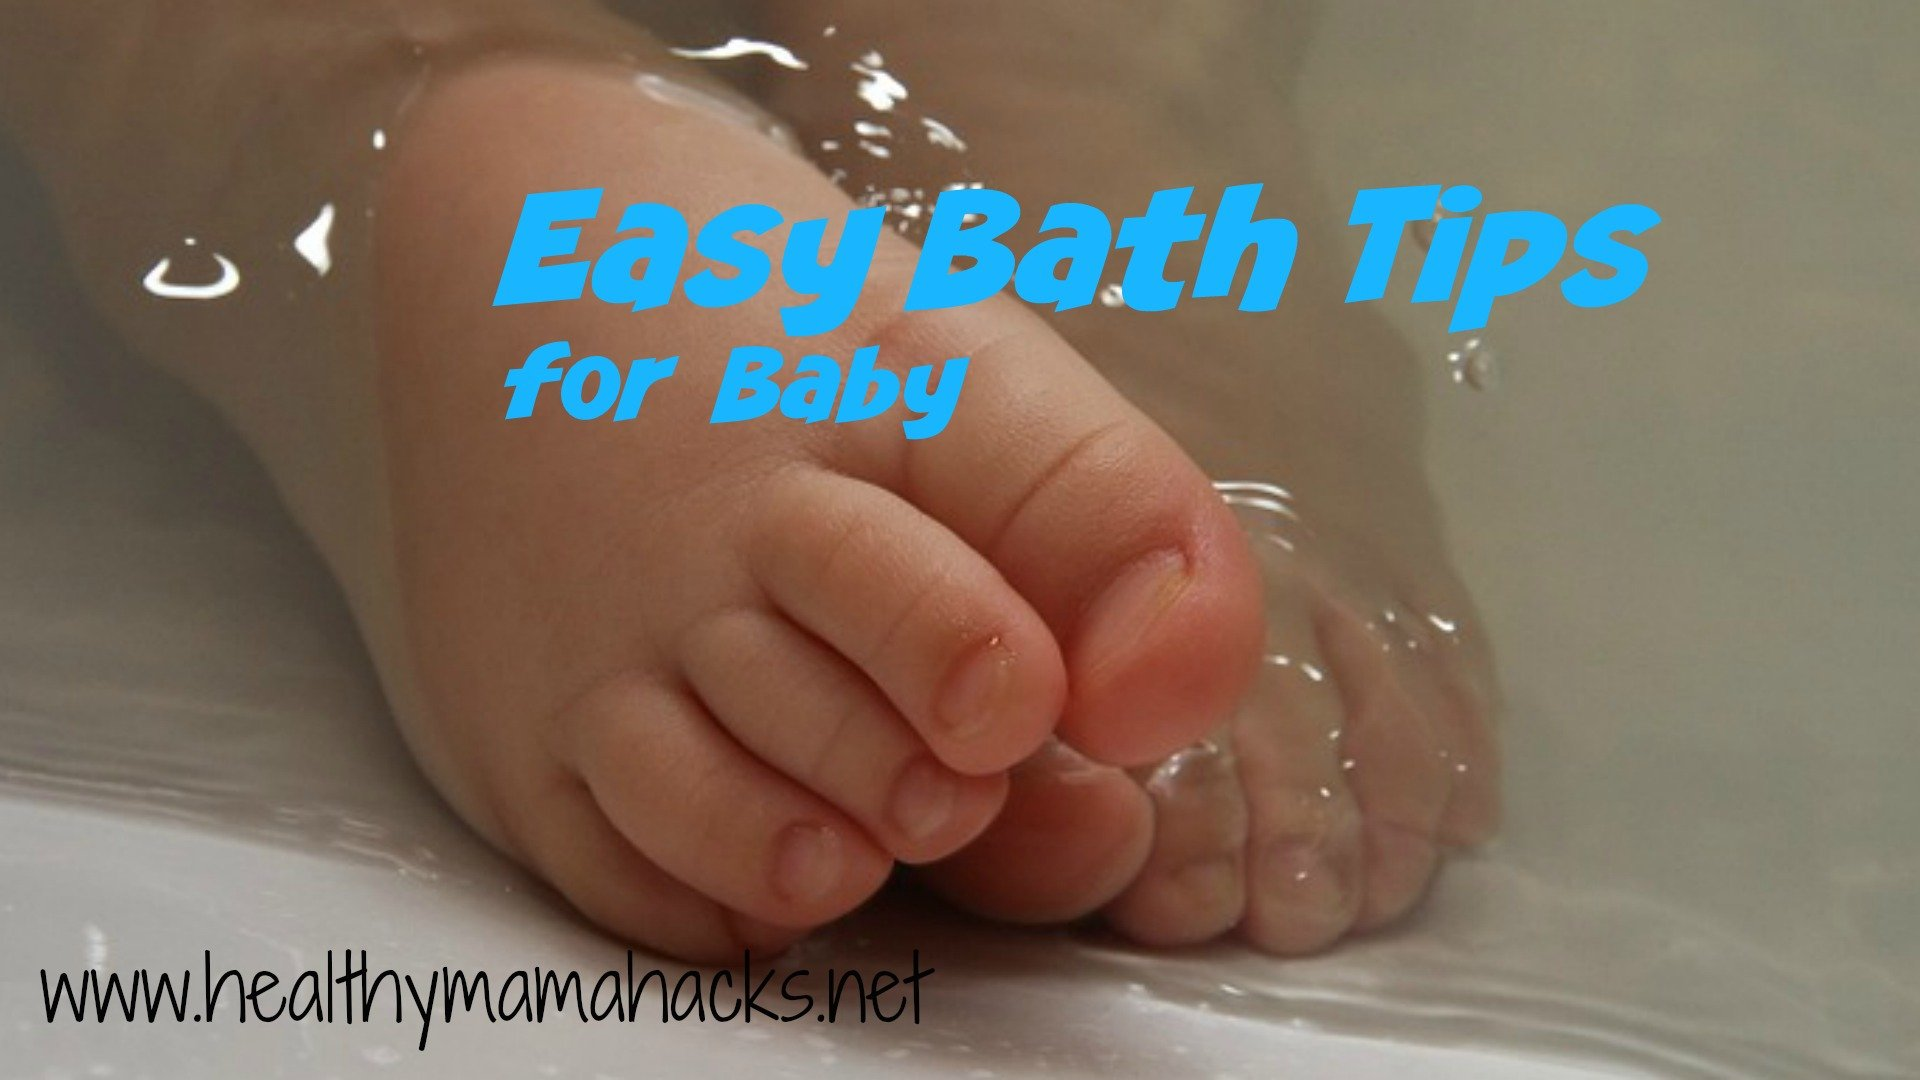 Easy Bath Tips for Baby